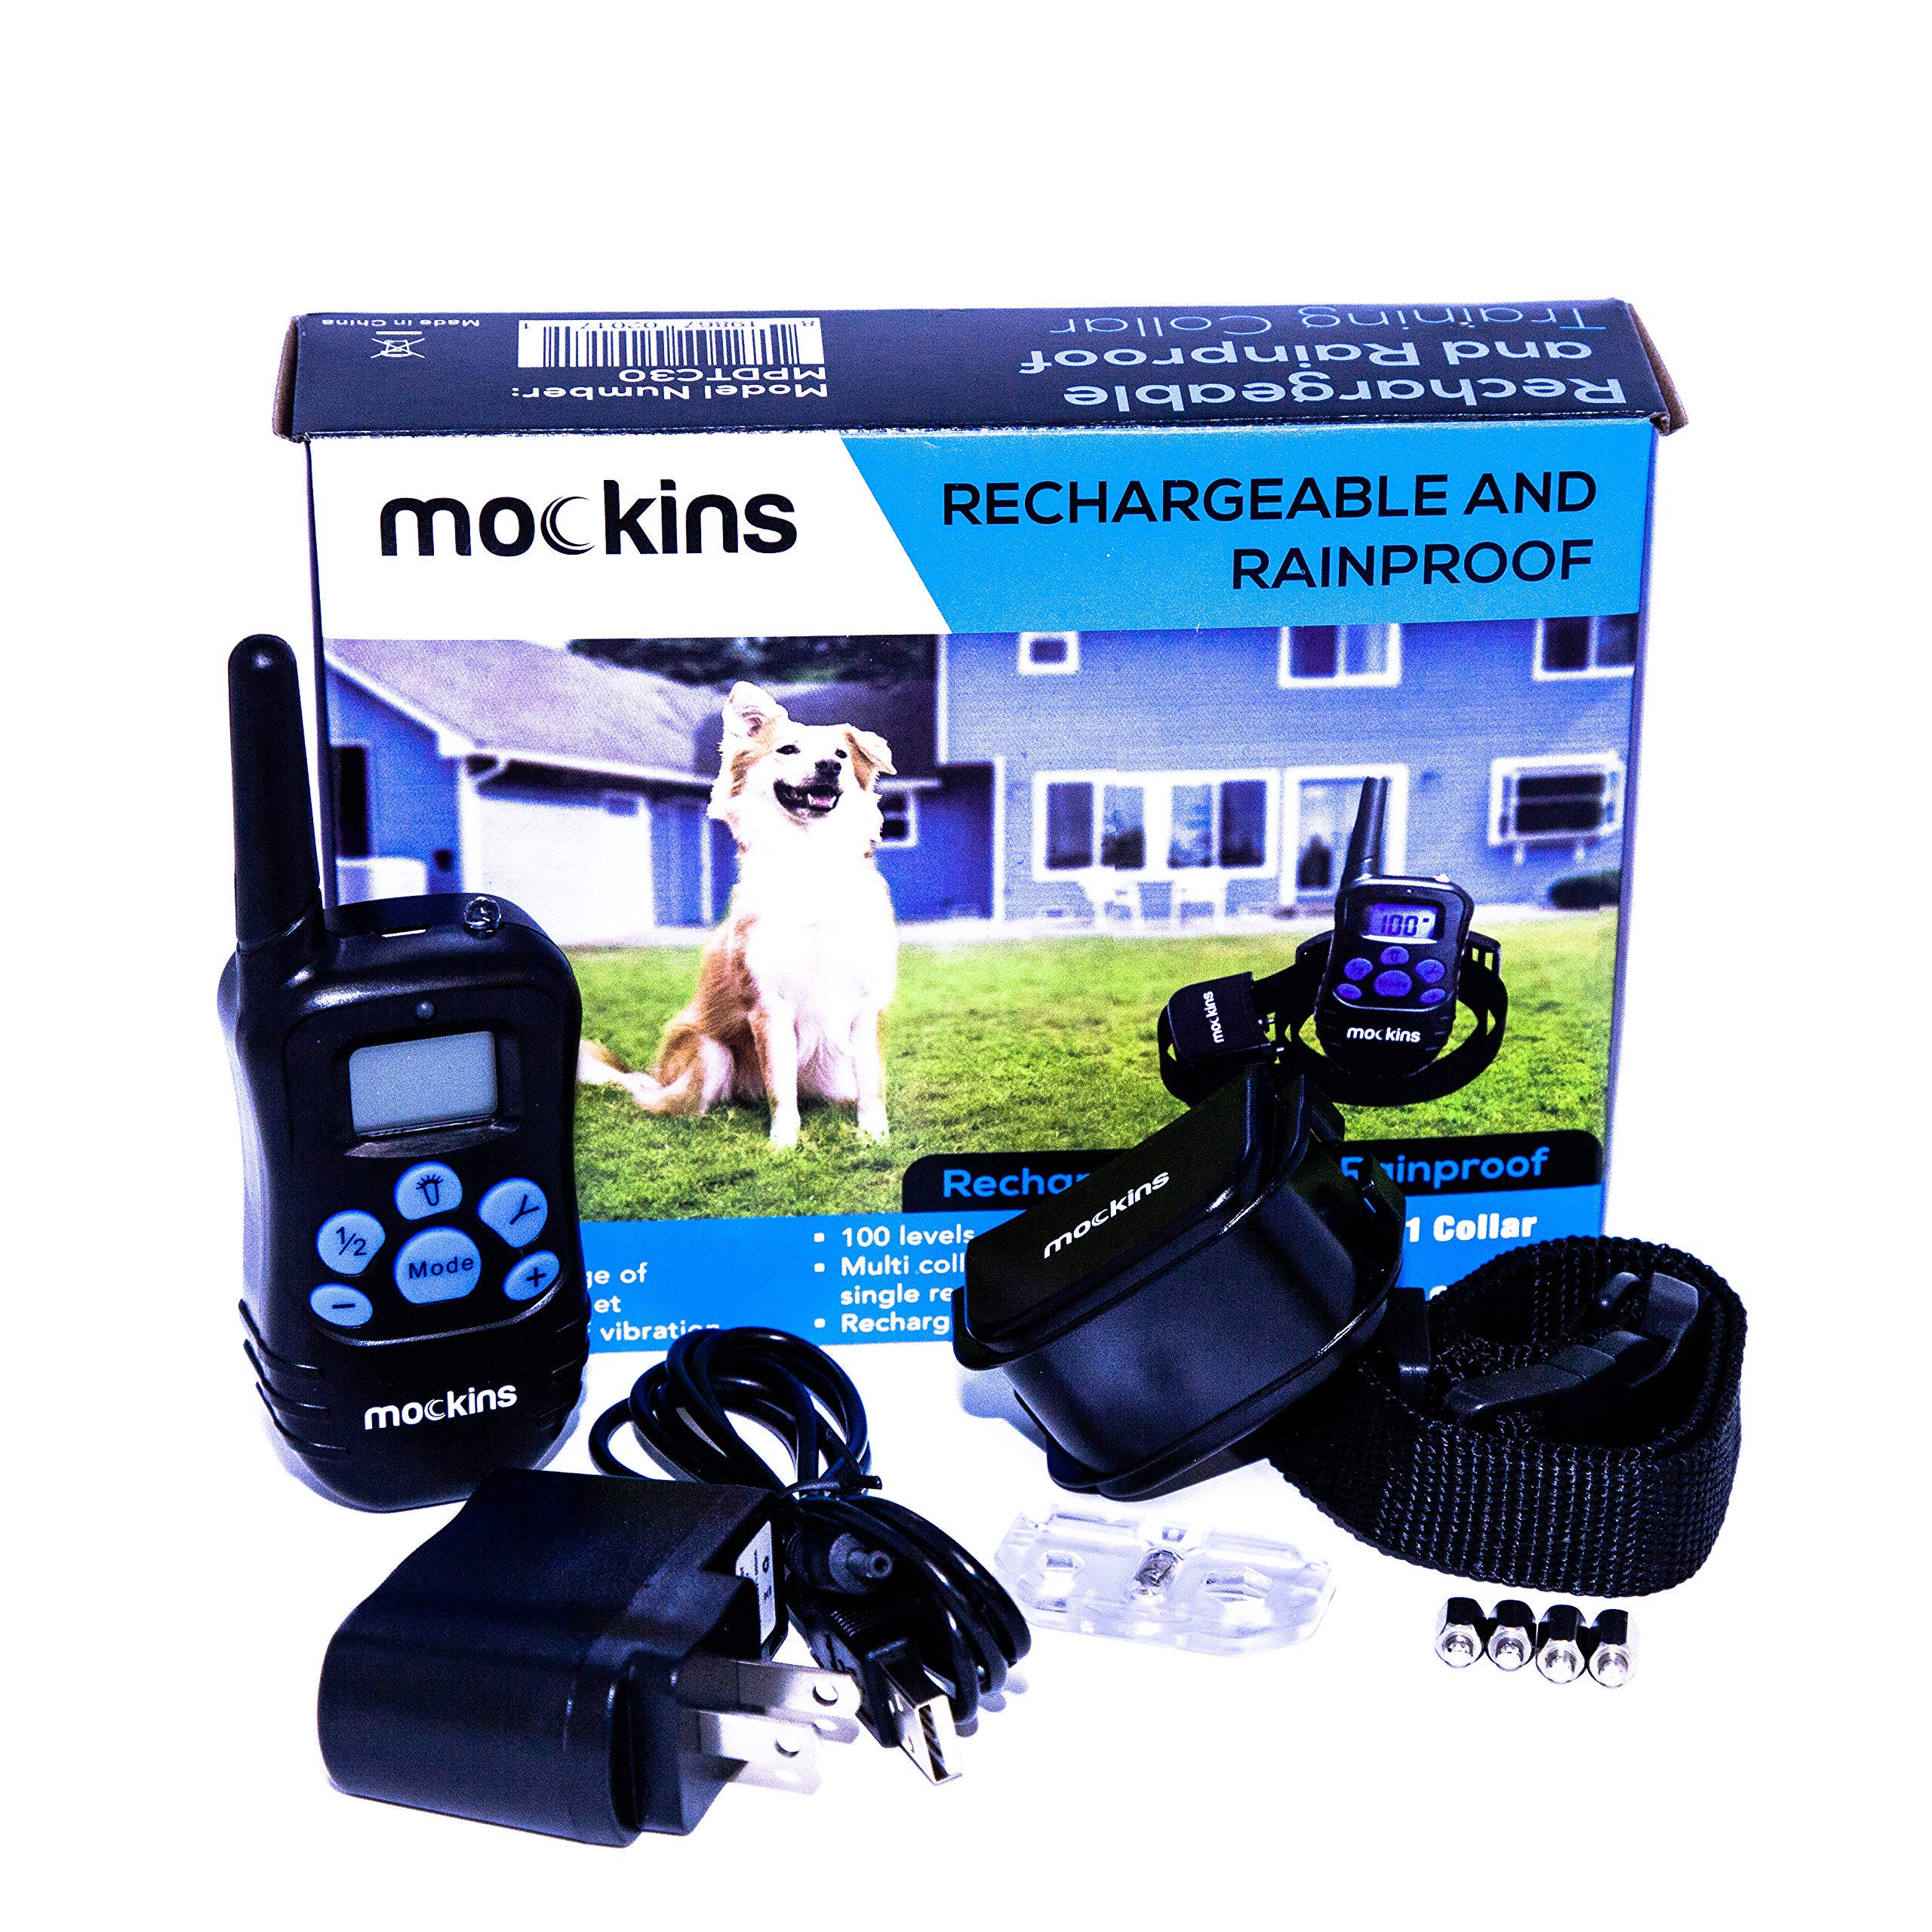 Mockins 100% Rainproof Rechargeable Electronic Remote Dog Training Shock Collar Beep Vibration - E-Collar 330 Yards (990 ft) Distance … … … … … …